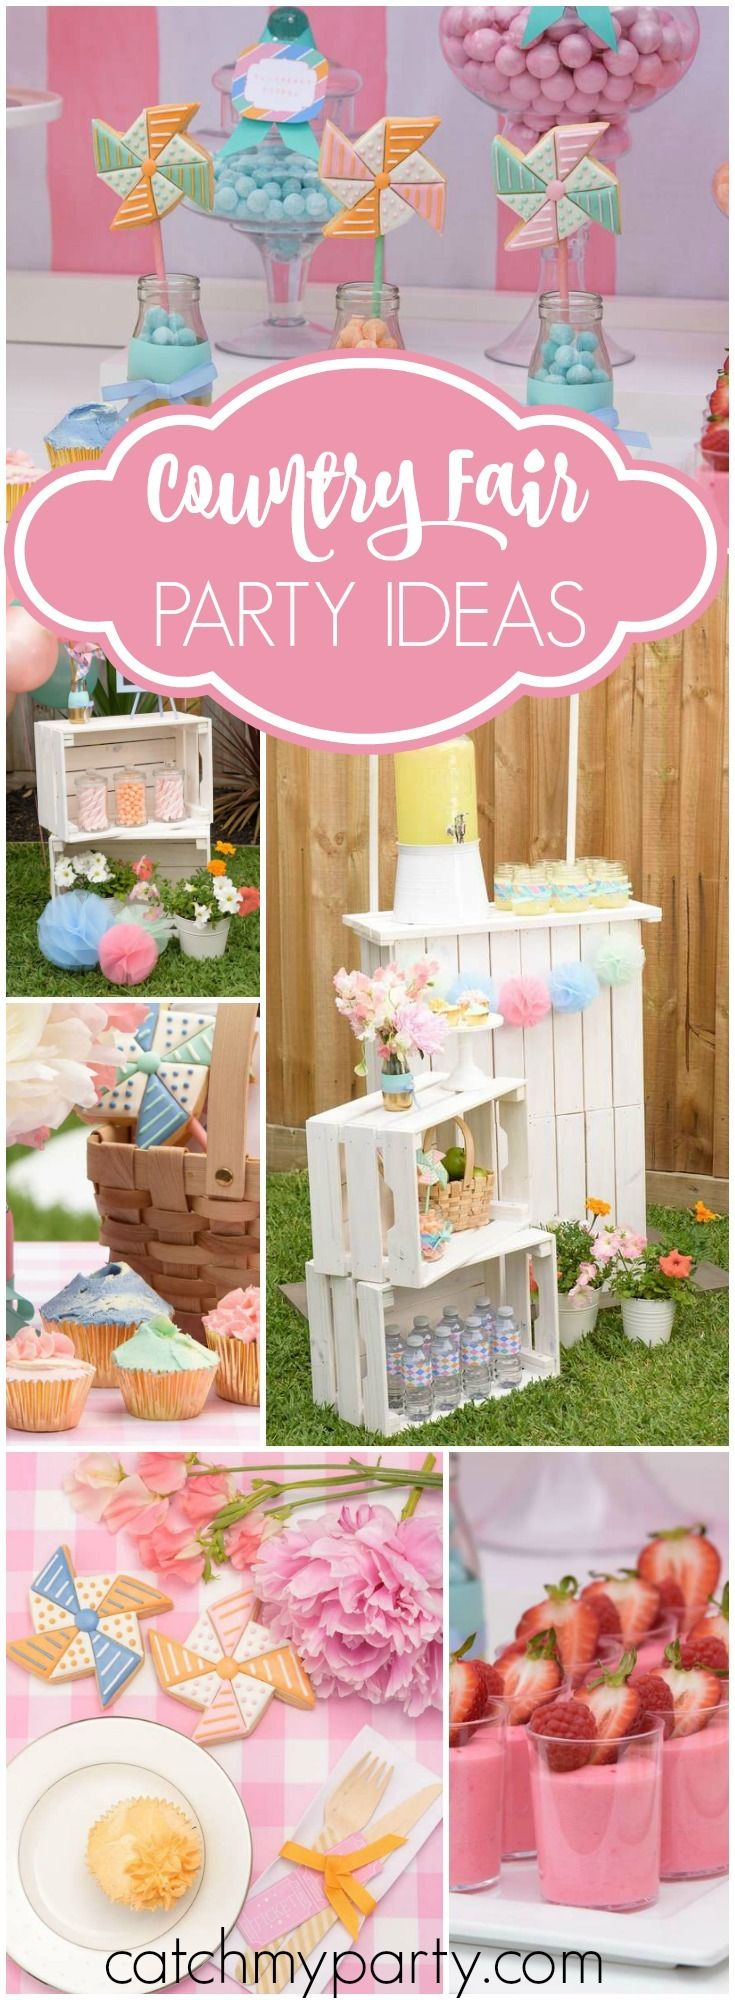 Wow! You have to see this pastel party with a country fair theme! See more party ideas at Catchmyparty.com!